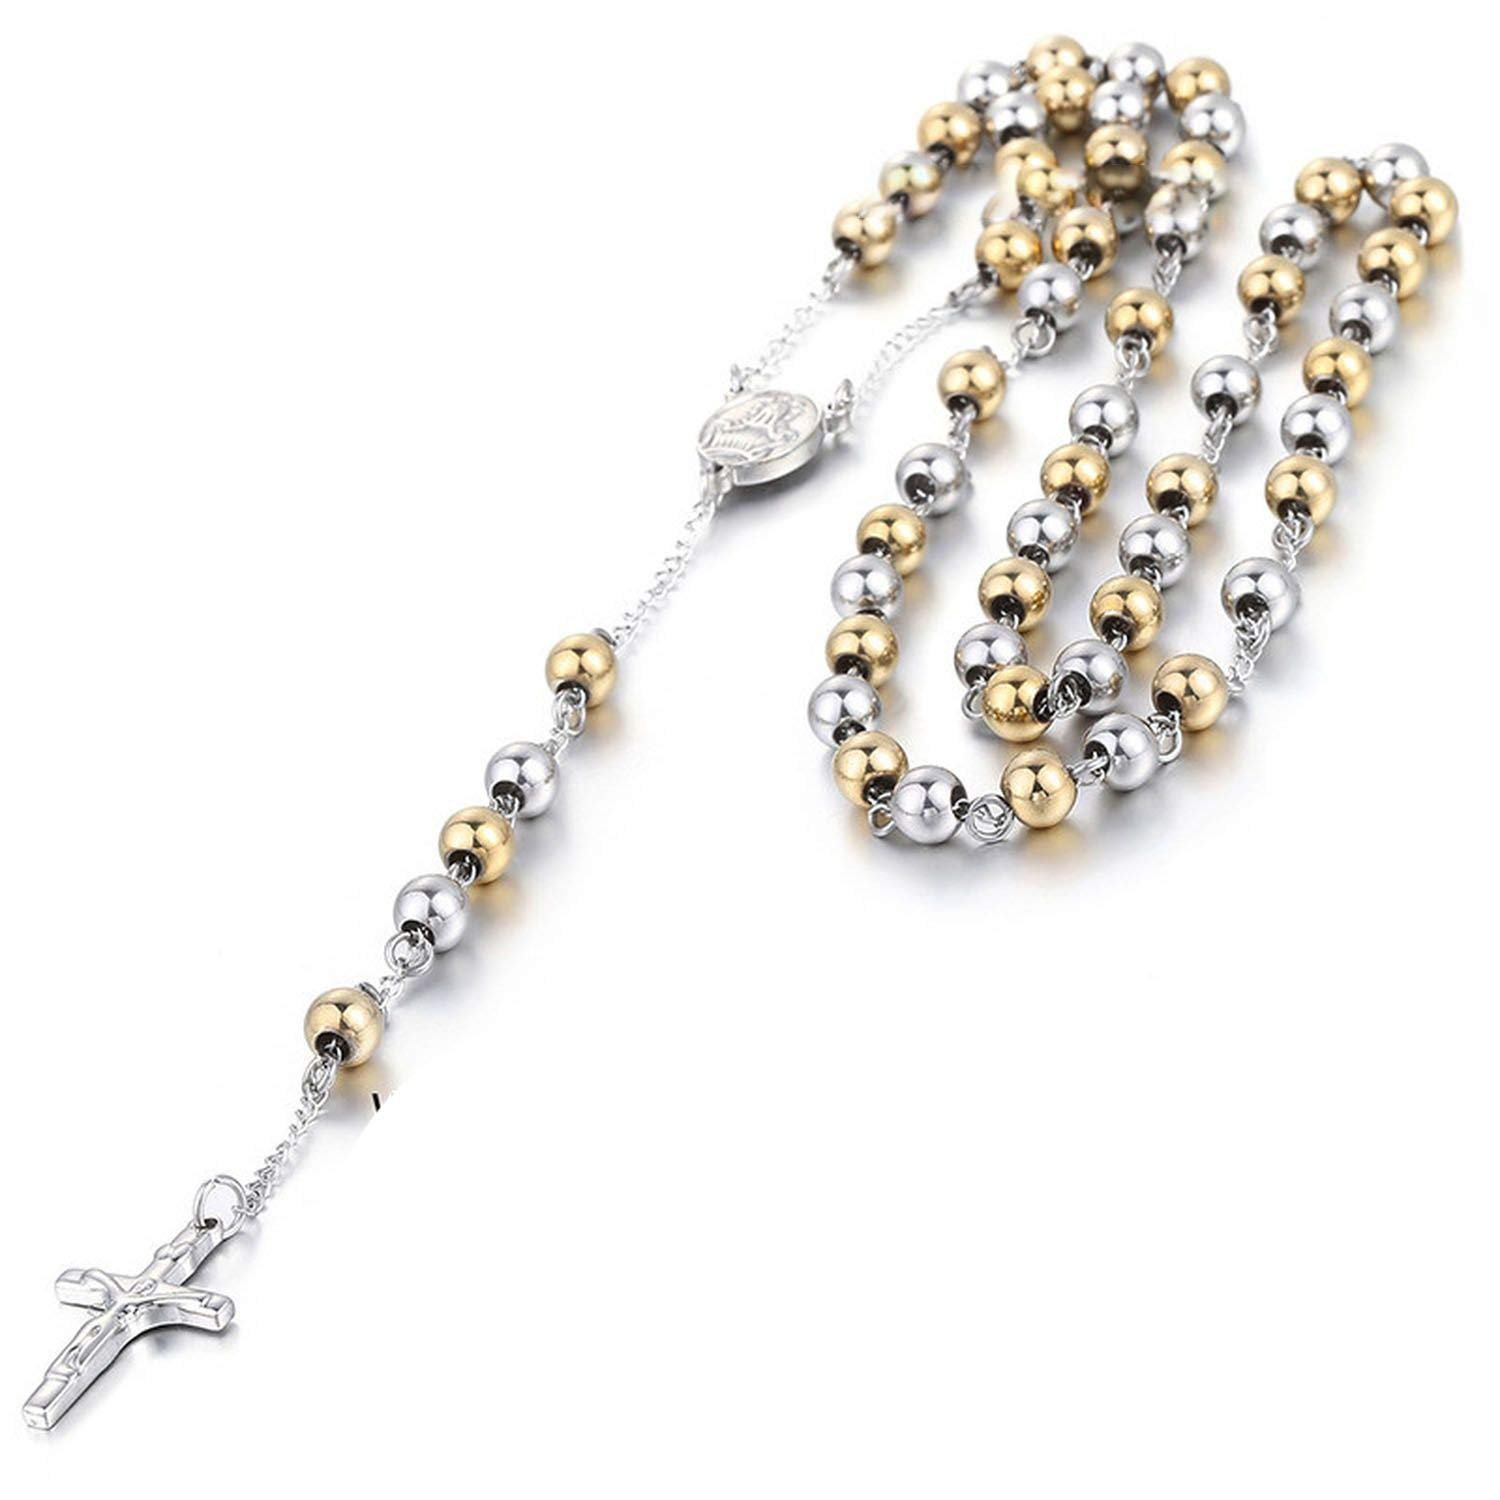 Mens Chain Stainless Steel Bead Chain Rosary Jesus Christ Cross Pendant Long Necklace,K07